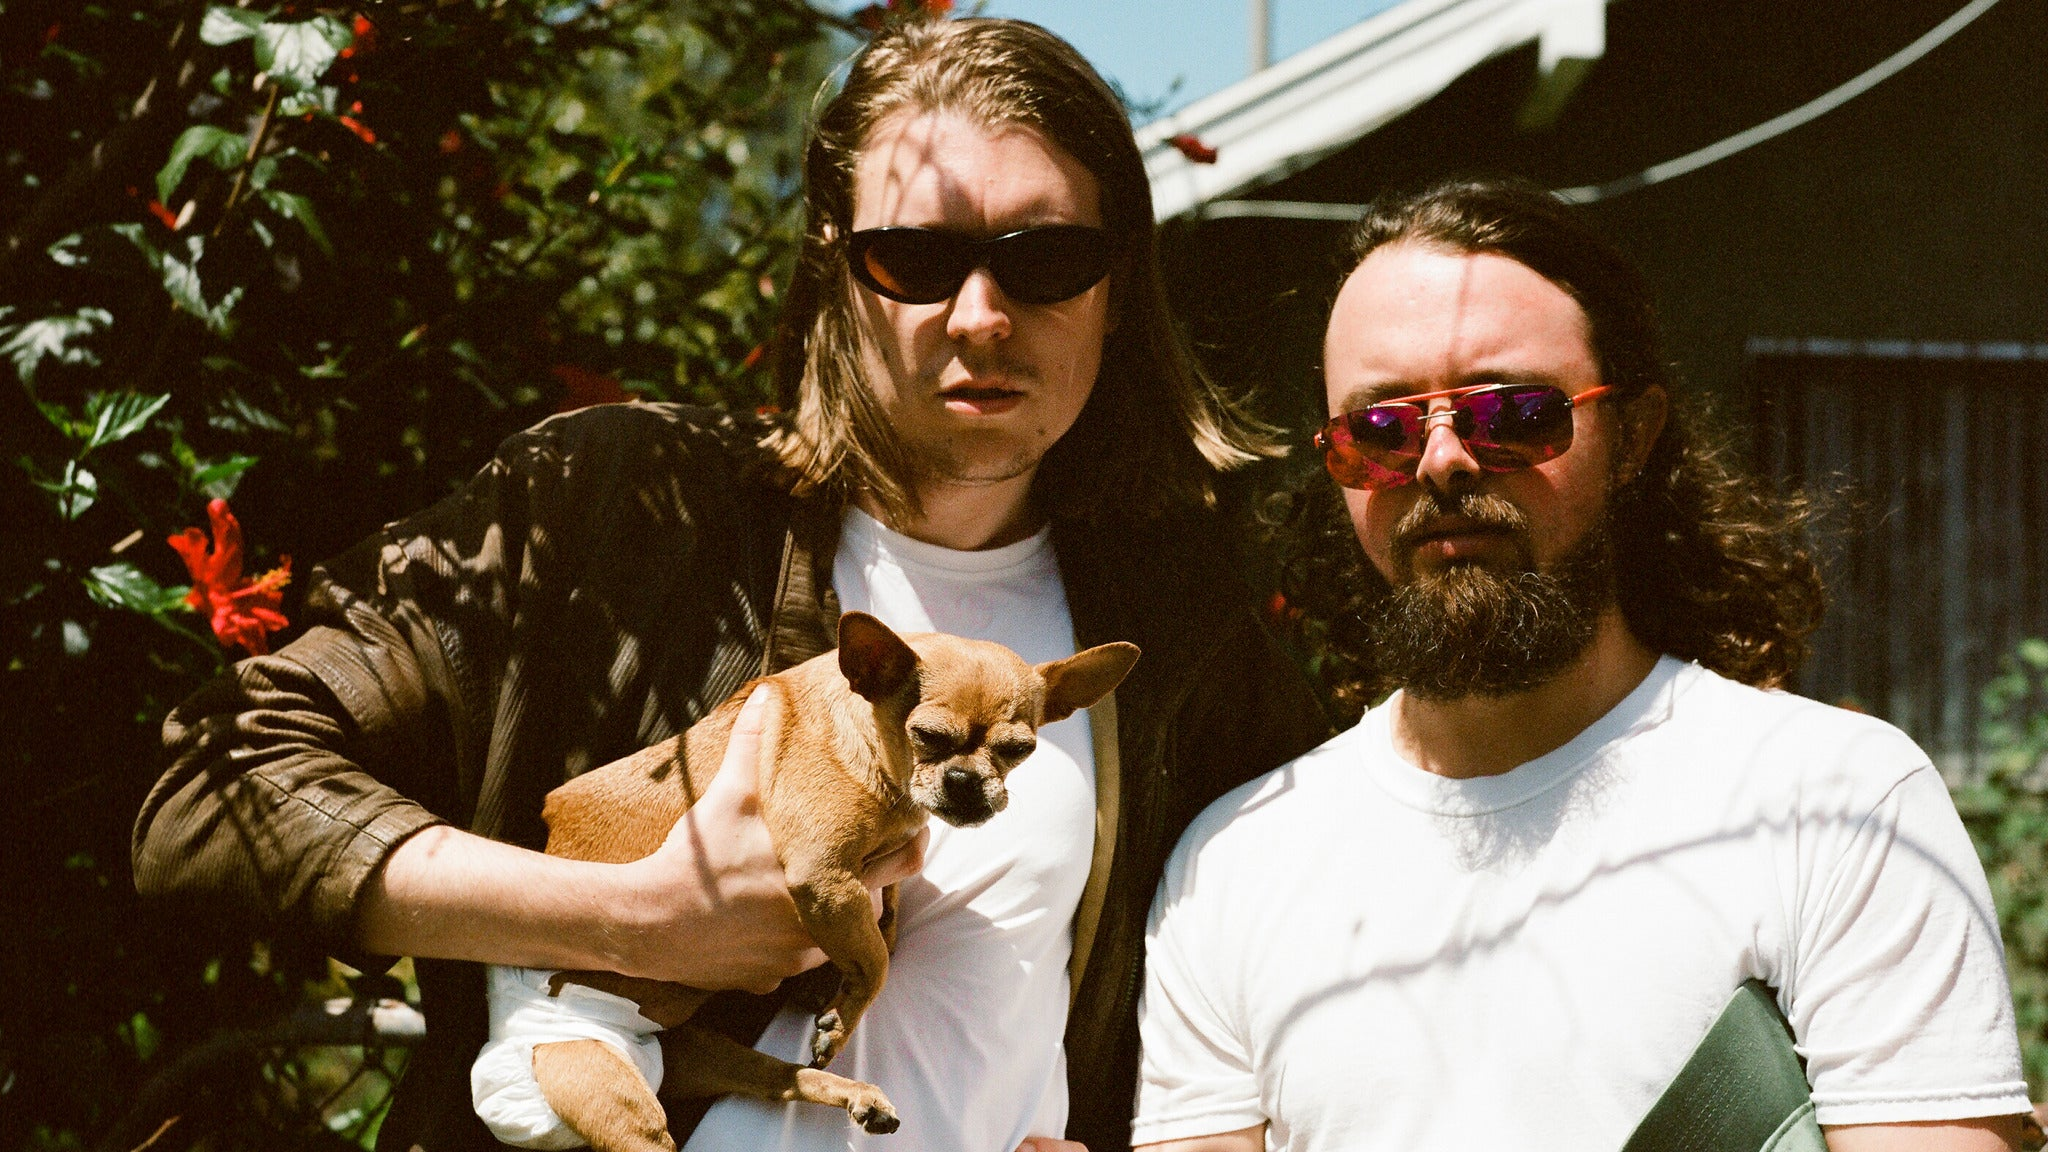 Alex Cameron at El Club